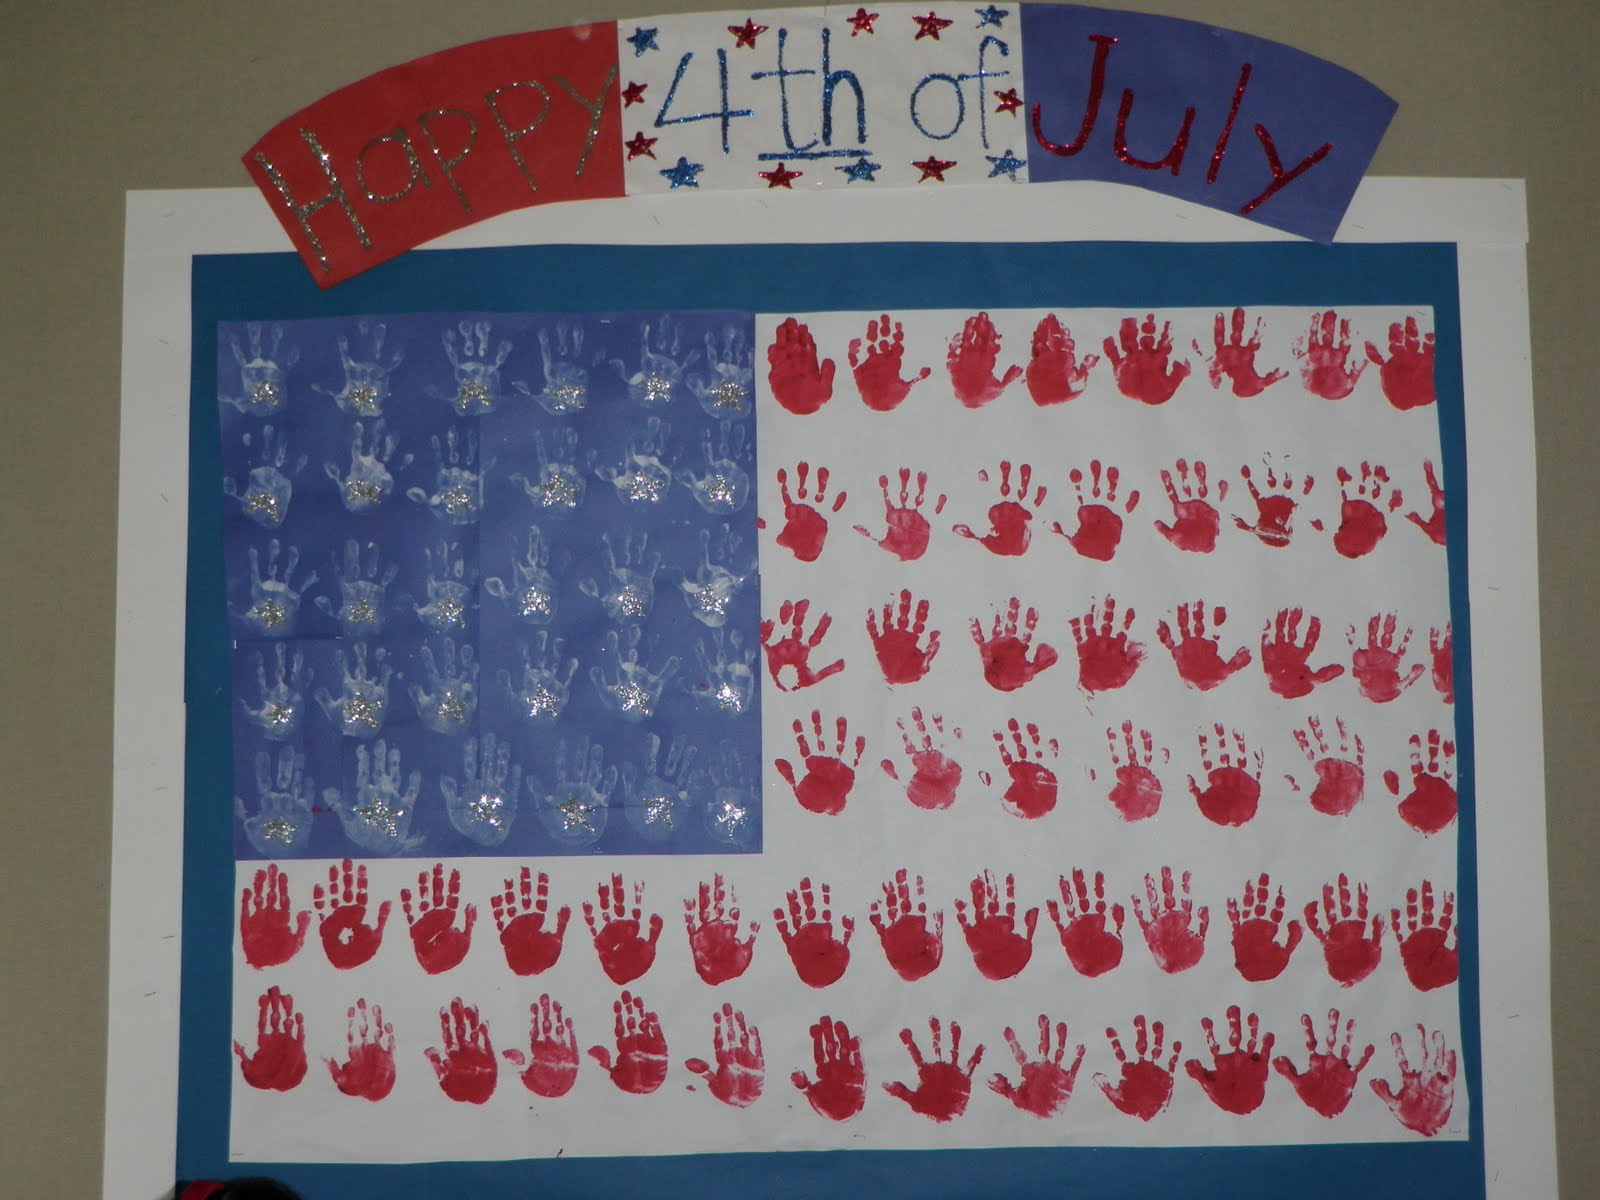 Learning Montessori 4th Of July Crafts And Parade